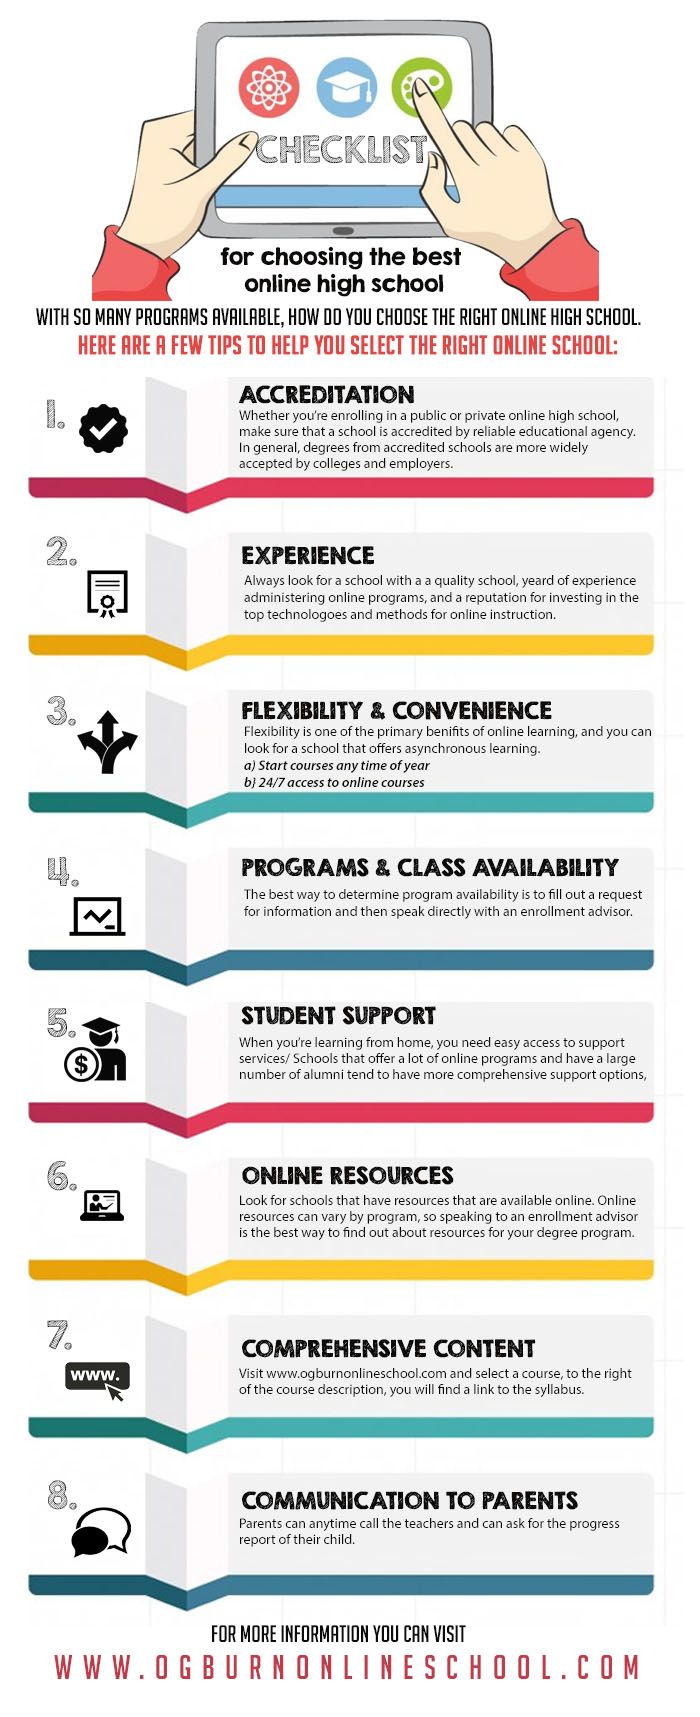 Steps to choose the best online high school